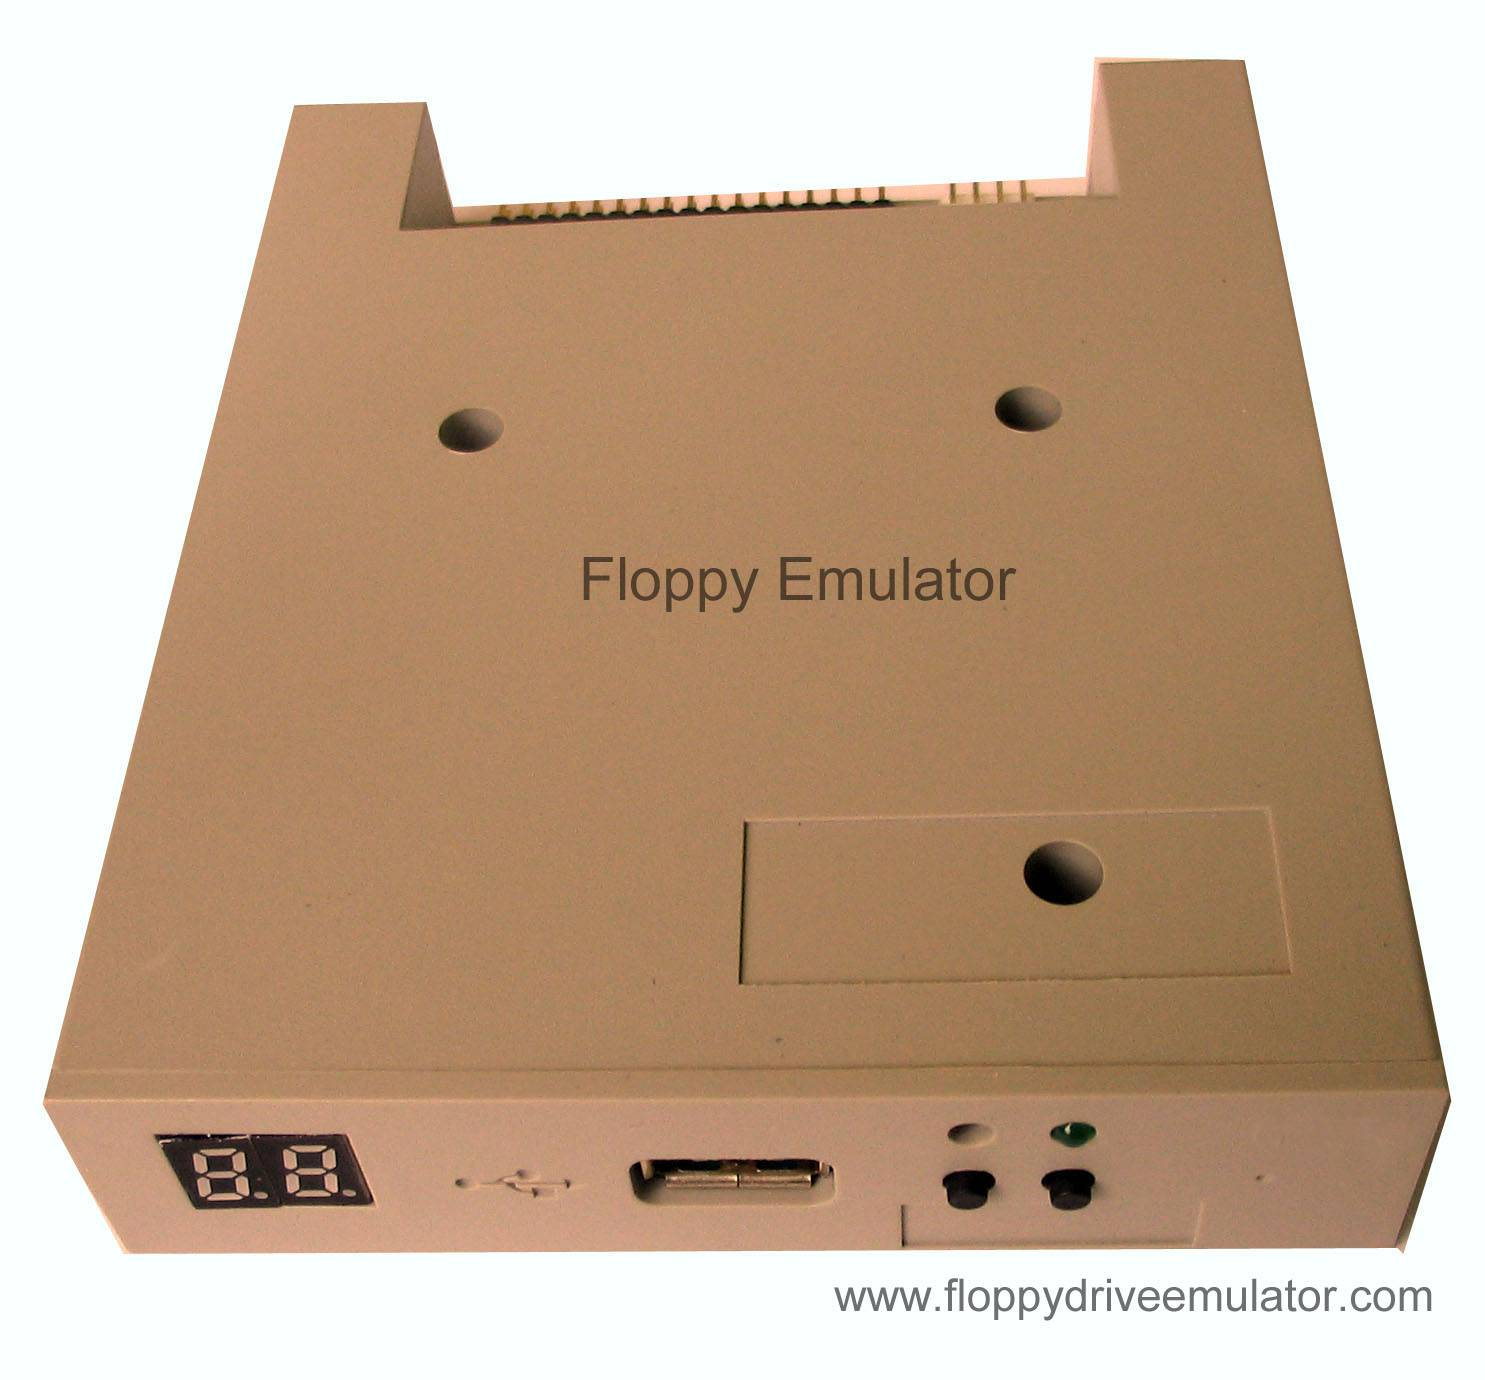 Usb floppy driver emulator